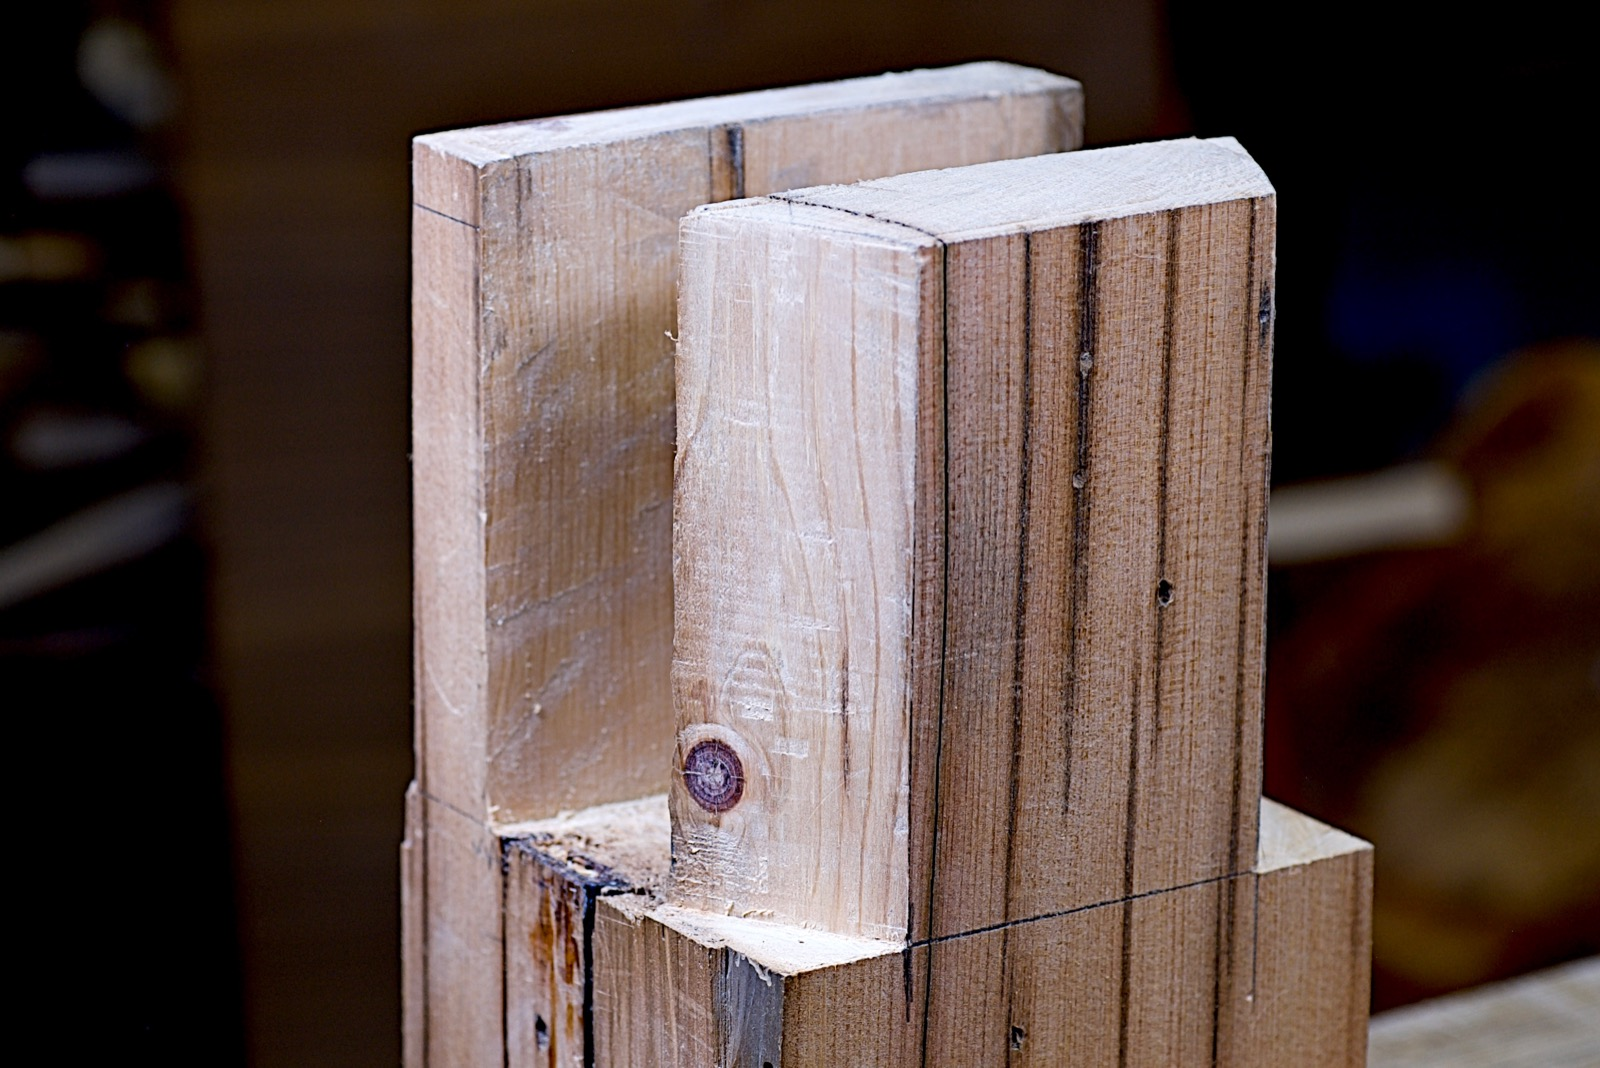 The finished double tenon sliding dovetail leg joint.